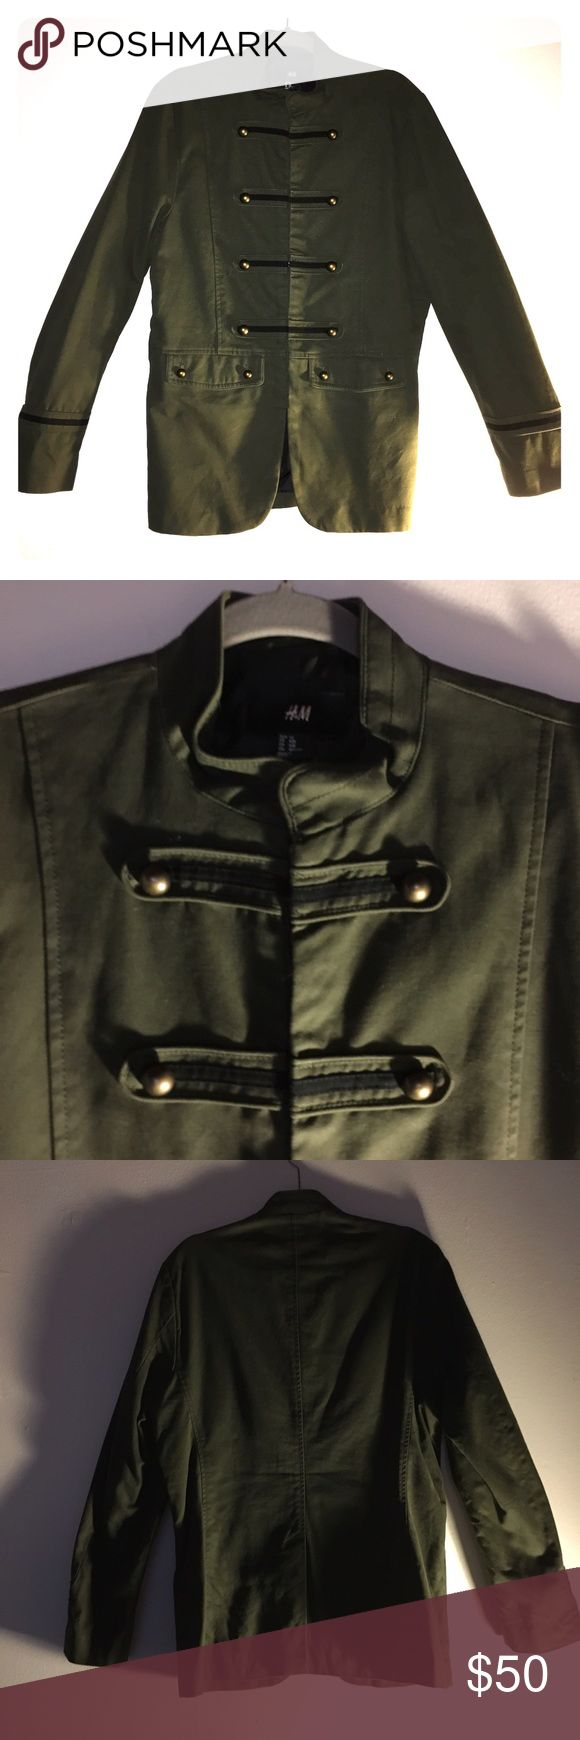 Men's Military Style Jacket NWOT excellent condition army green jacket. Black piping on sleeves and down the front. Brass colored buttons. Exterior 100% cotton, lining 100% polyester. Hook and eye clasps. No fading, defects or signs of wear. Reasonable offers welcome! H&M Jackets & Coats Military & Field